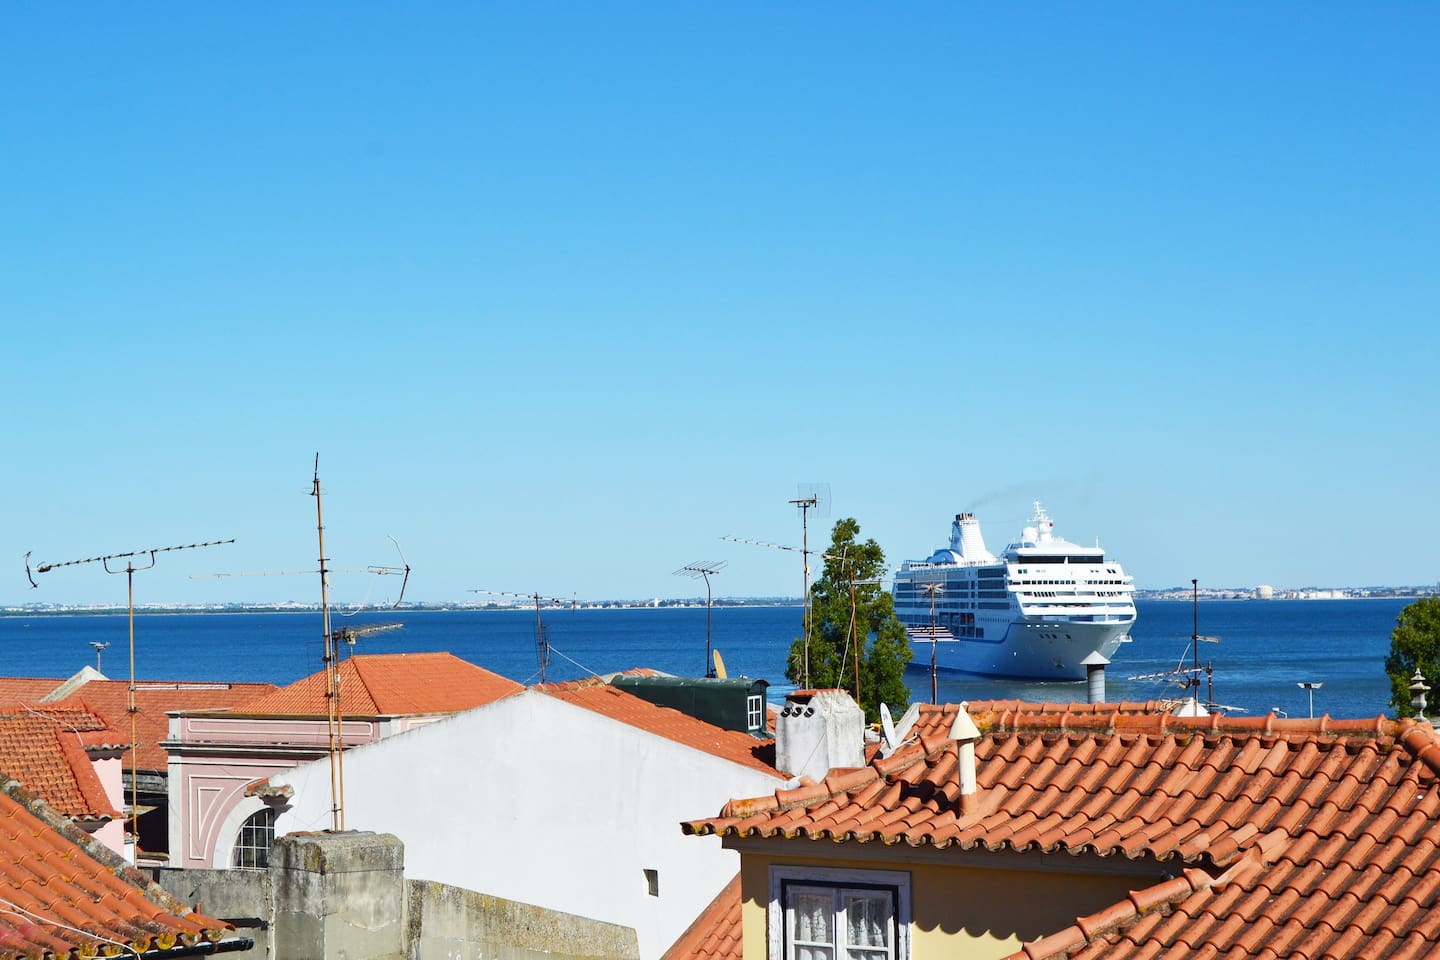 From Nidus, you can see the Tejo river with cruisers alongside the river.